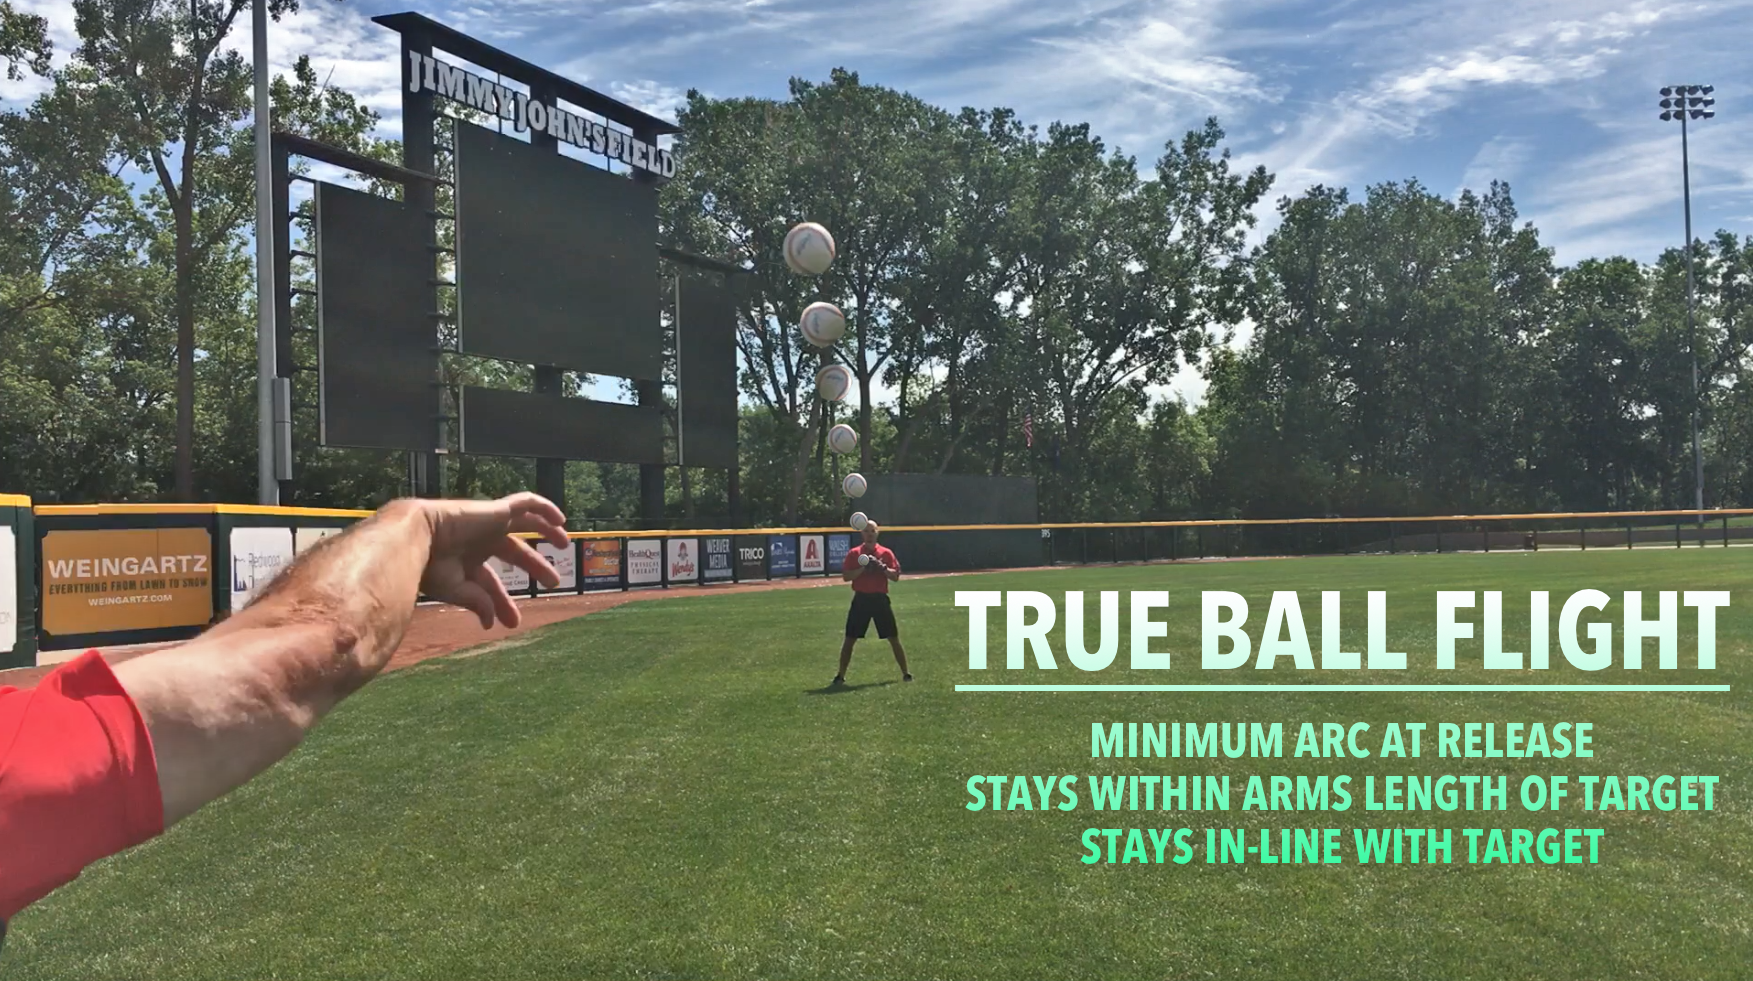 True Ball Flight - With our built in True Ball Flight Criteria and accuracy protocols, you will learn how to maximize the repeatability of your throwing motion to increase efficiency in each throw which ultimately leads to increase performance in games. The online program teaches you how to evaluate the flight of each throw so you can continually strive to produce the same release point in each phase of the program. Pitchers will be encouraged to complete the program through their pitching delivery whereas position players will strive to complete the throwing program through their position-specific throw.